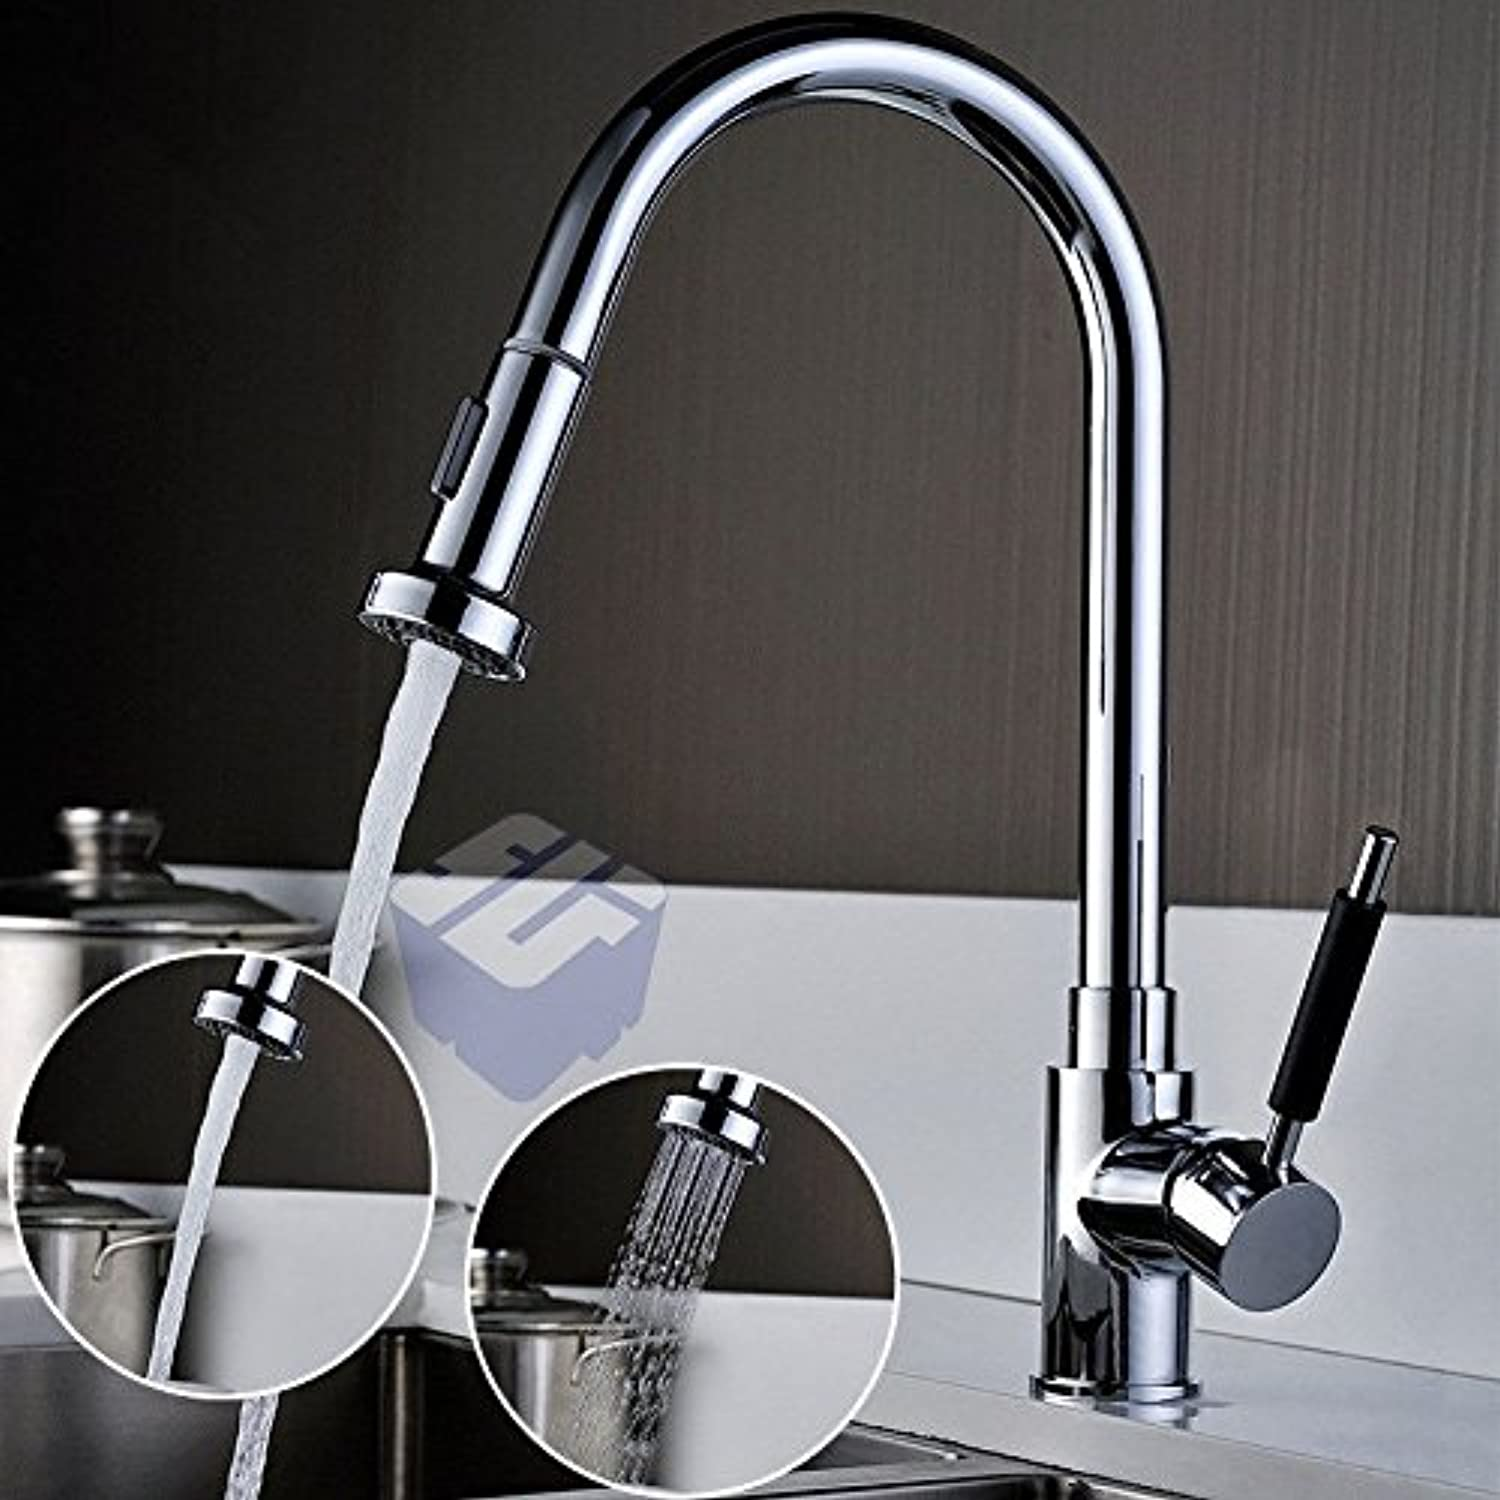 AQMMi Bathroom Sink Faucet Basin Mixer Tap Brass Pull-Out Hot and Cold Water Basin Sink Tap Bathroom Bar Faucet